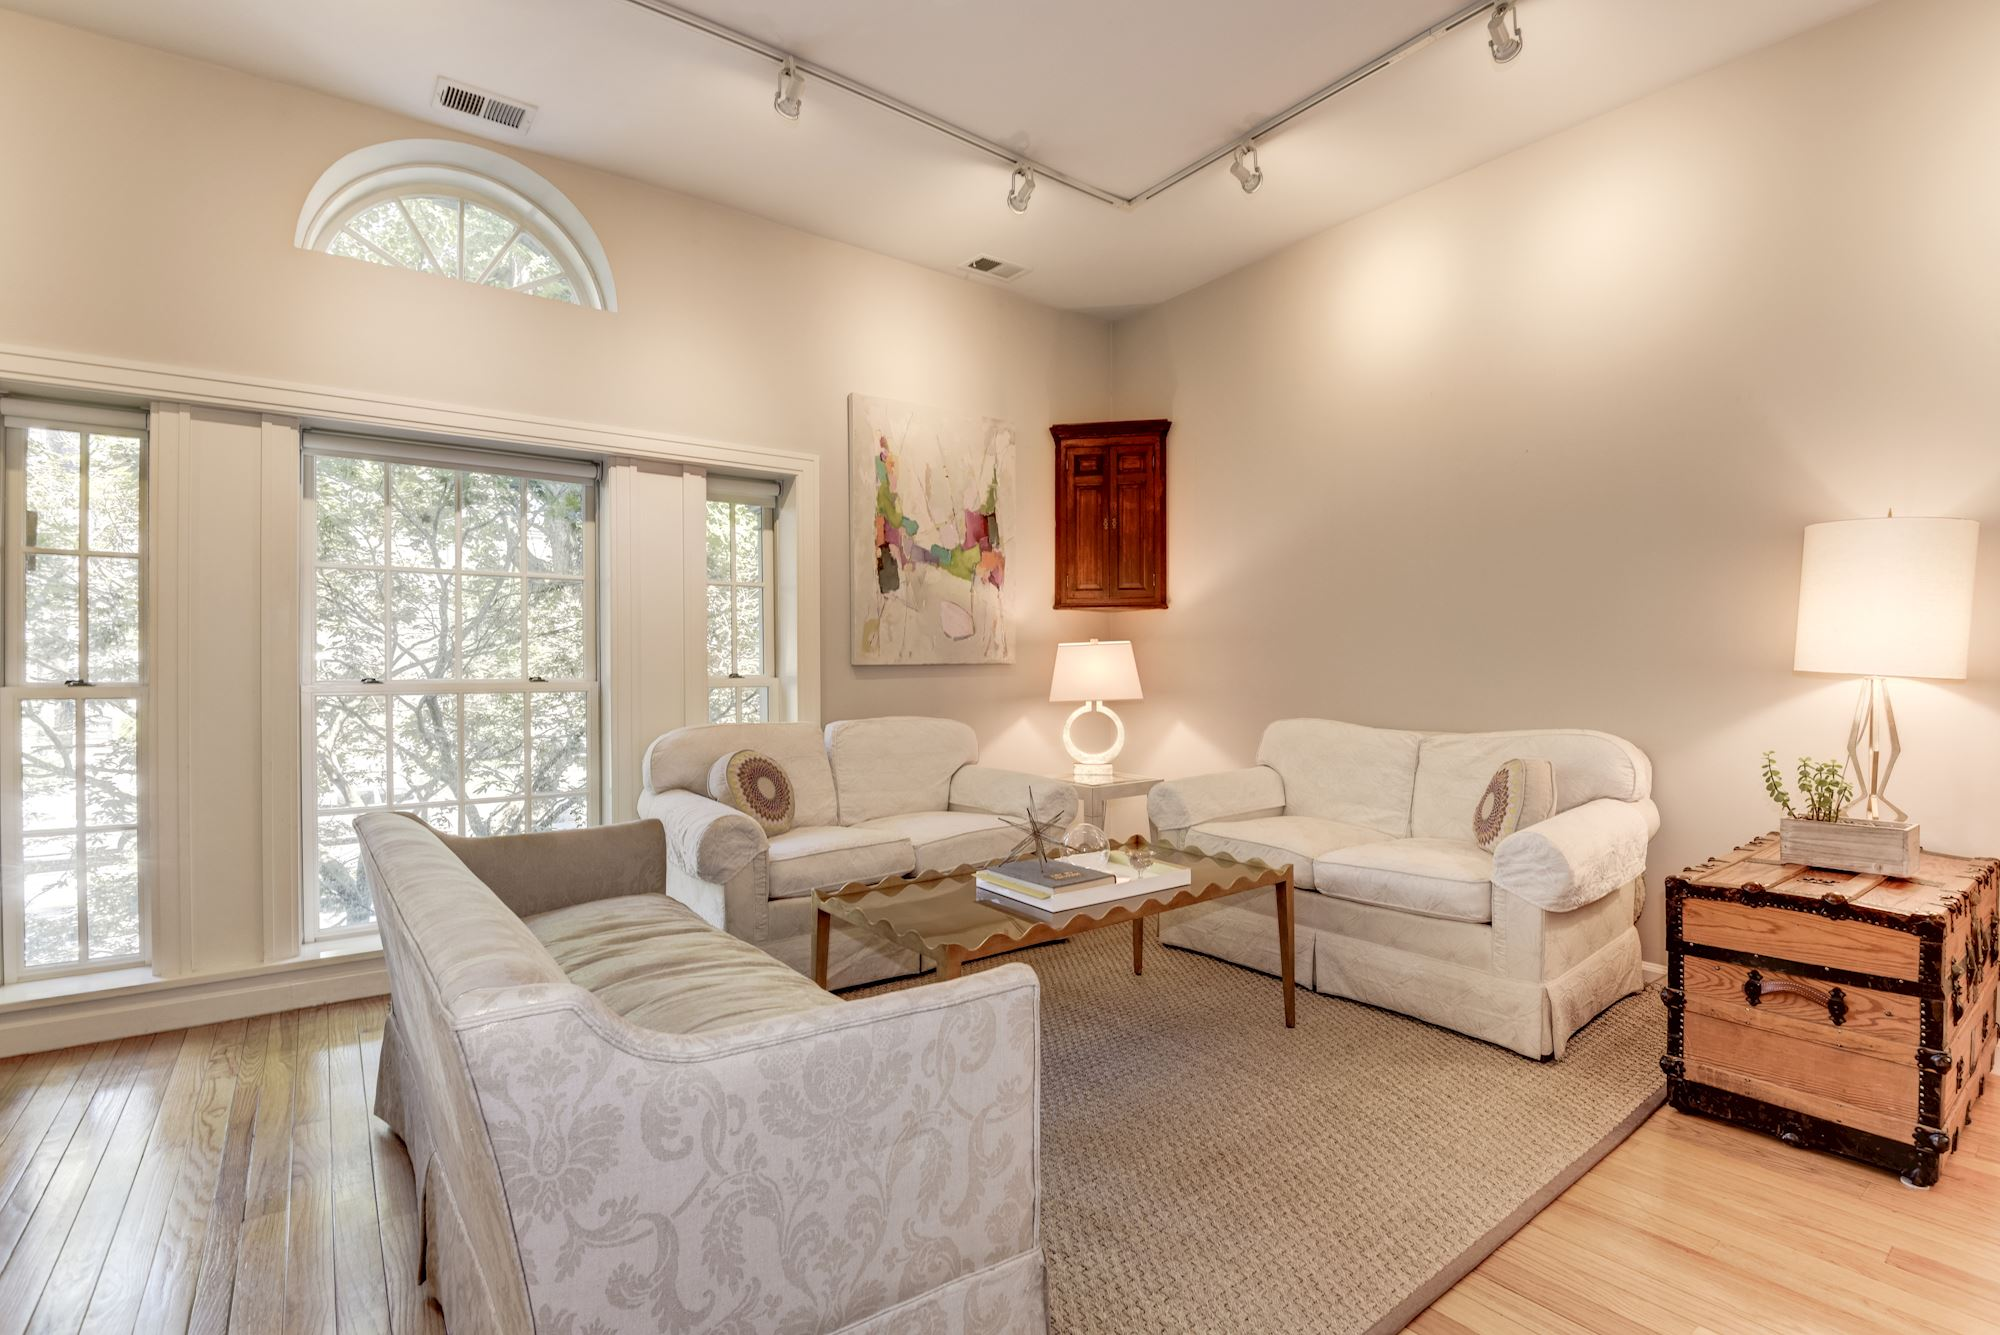 UNDER CONTRACT: 1 BD Stonesdale Condo in Great DC Location